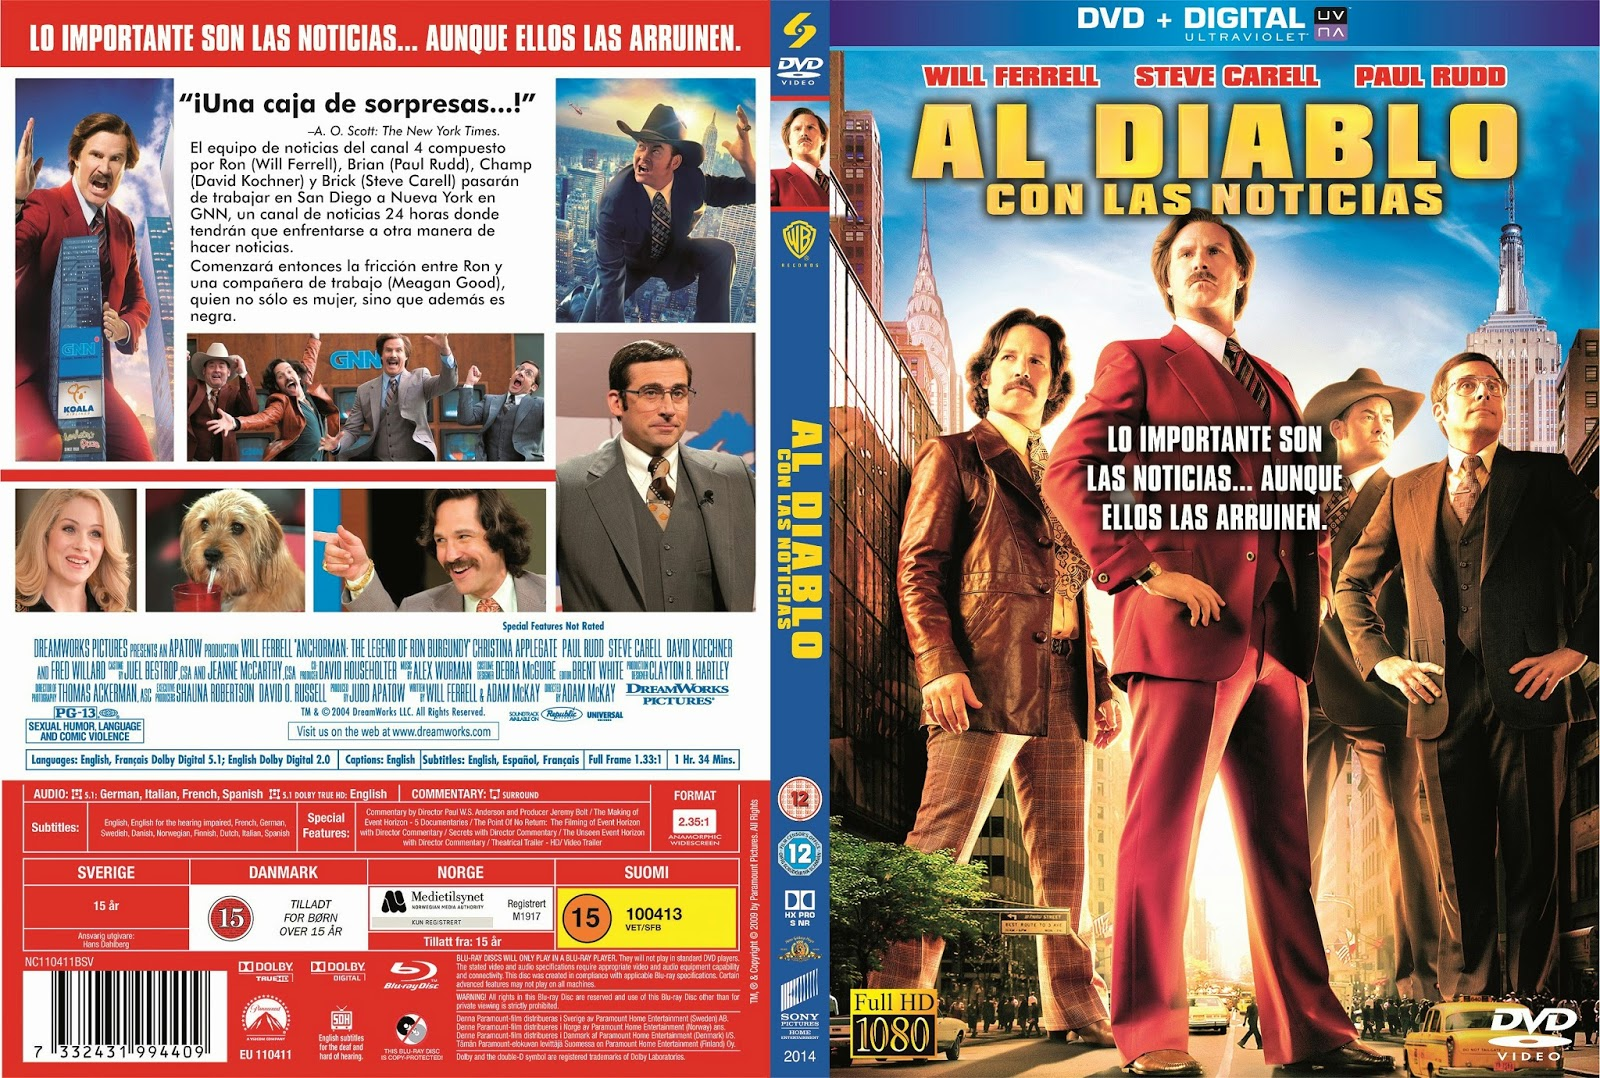 movies world anchorman 2 the legend continues al diablo